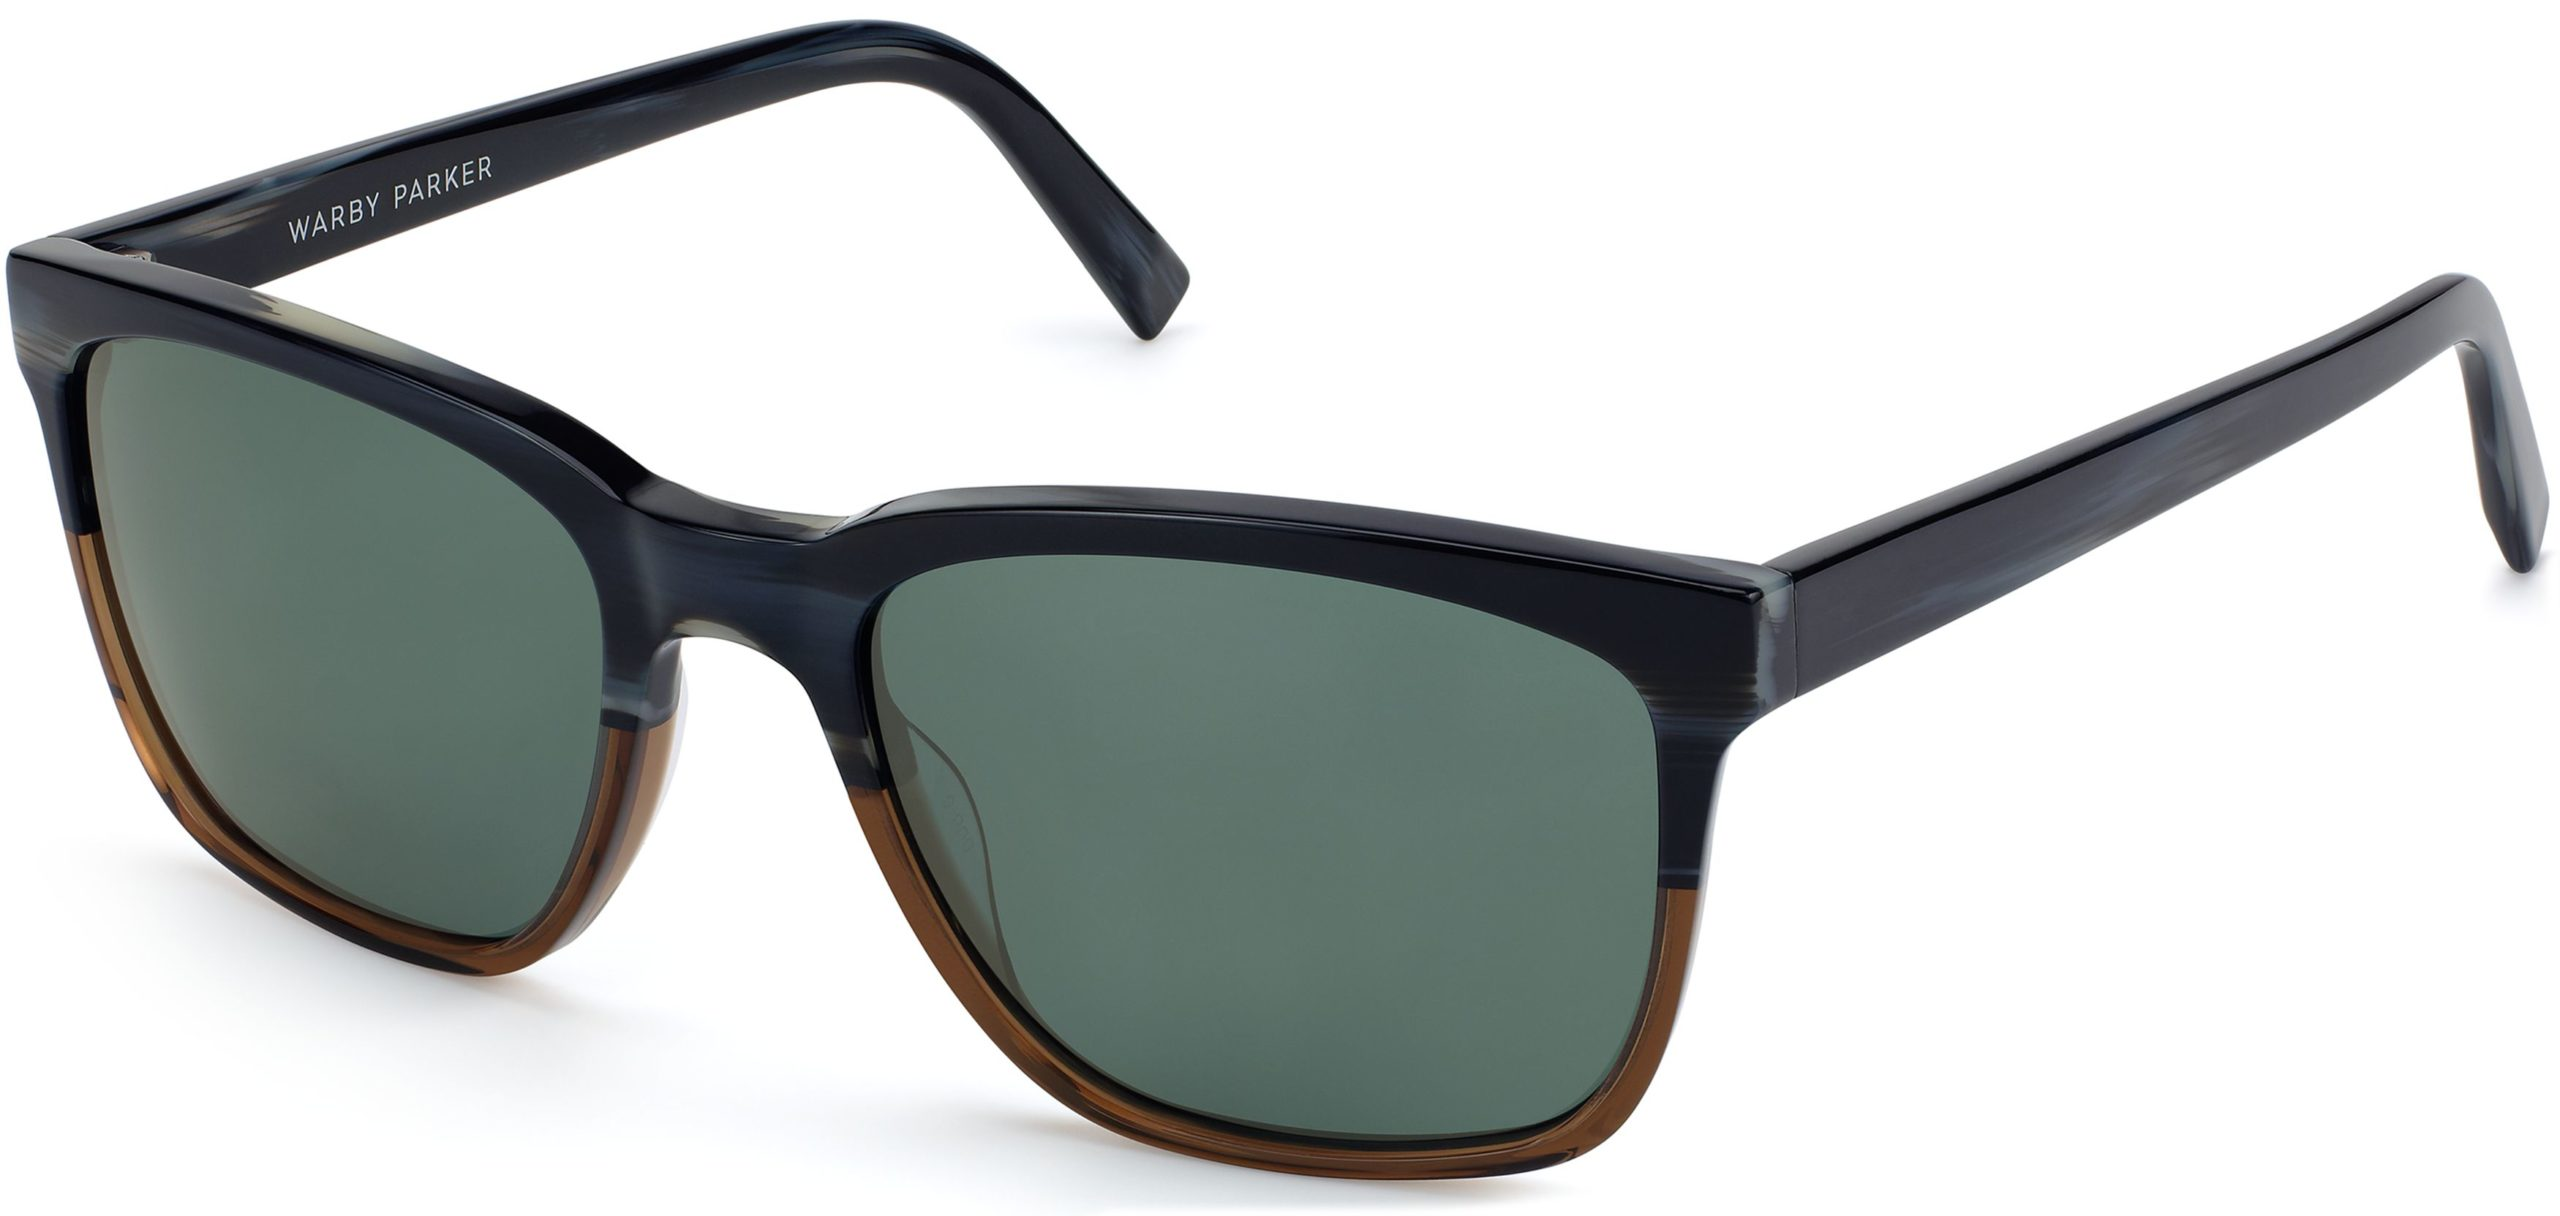 Angle View Image of Barkley Sunglasses Collection, by Warby Parker Brand, in Antique Shale Fade Color